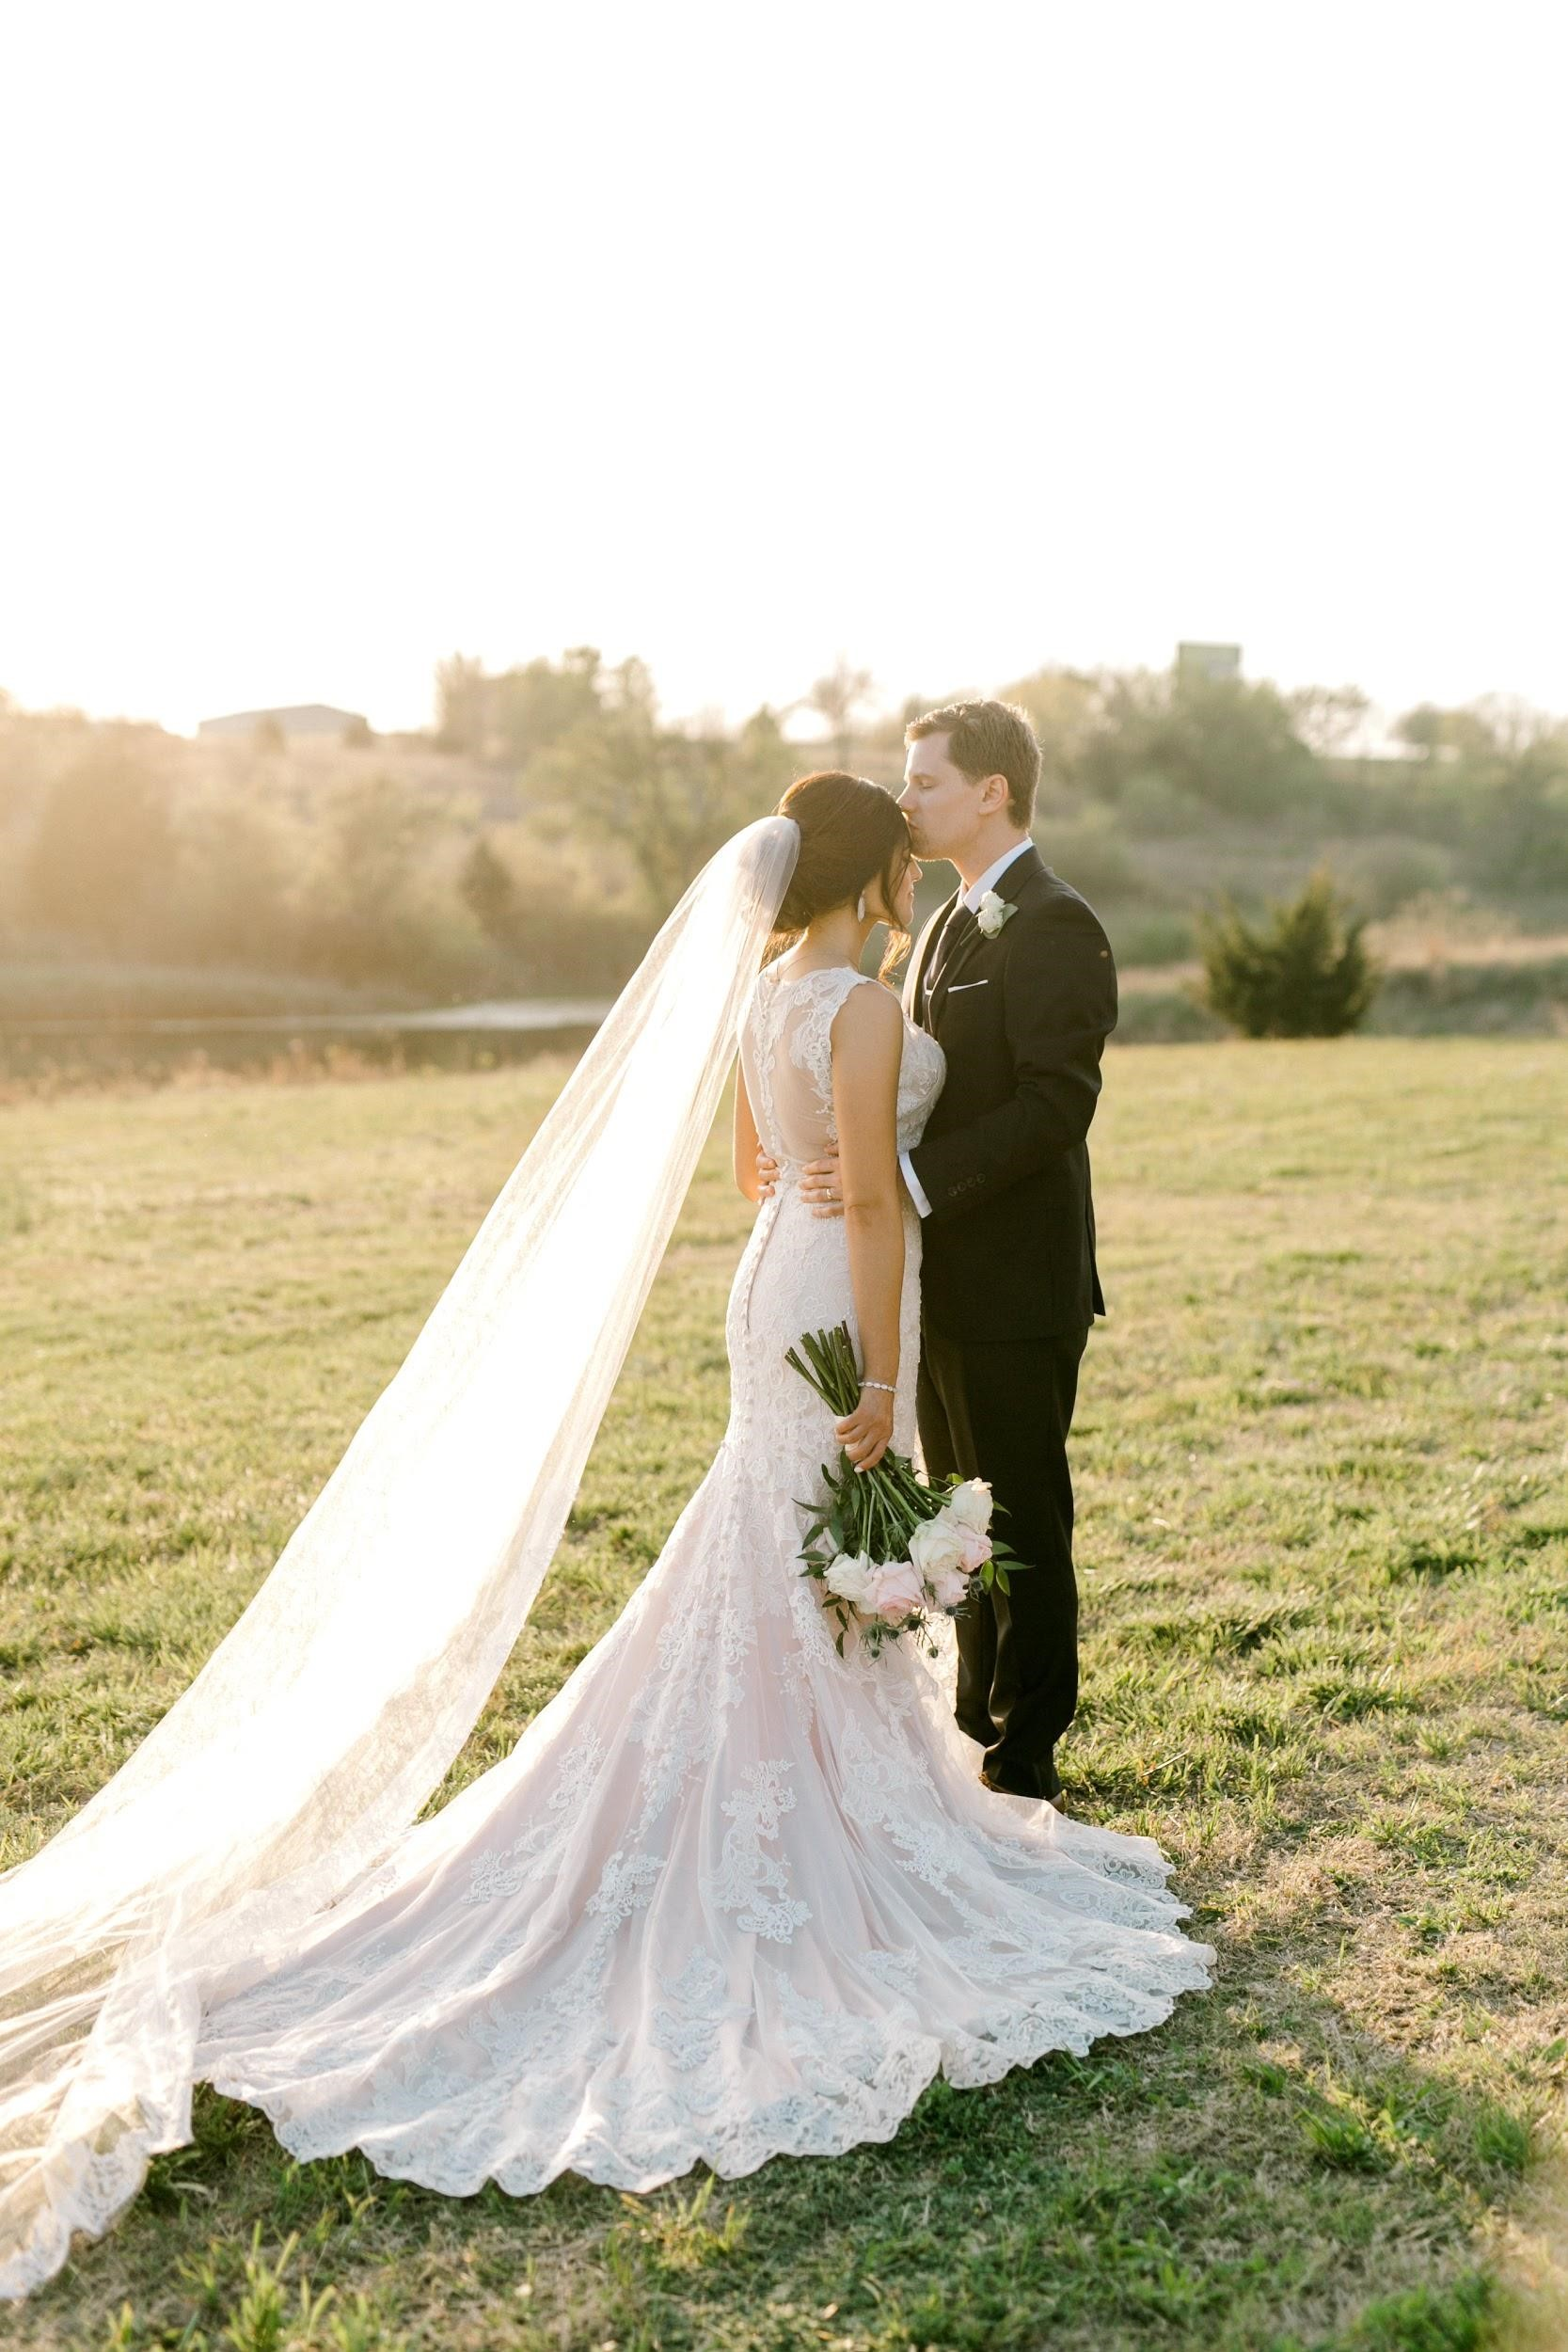 Three Reasons to Use Local Vendors to Plan Your Wedding